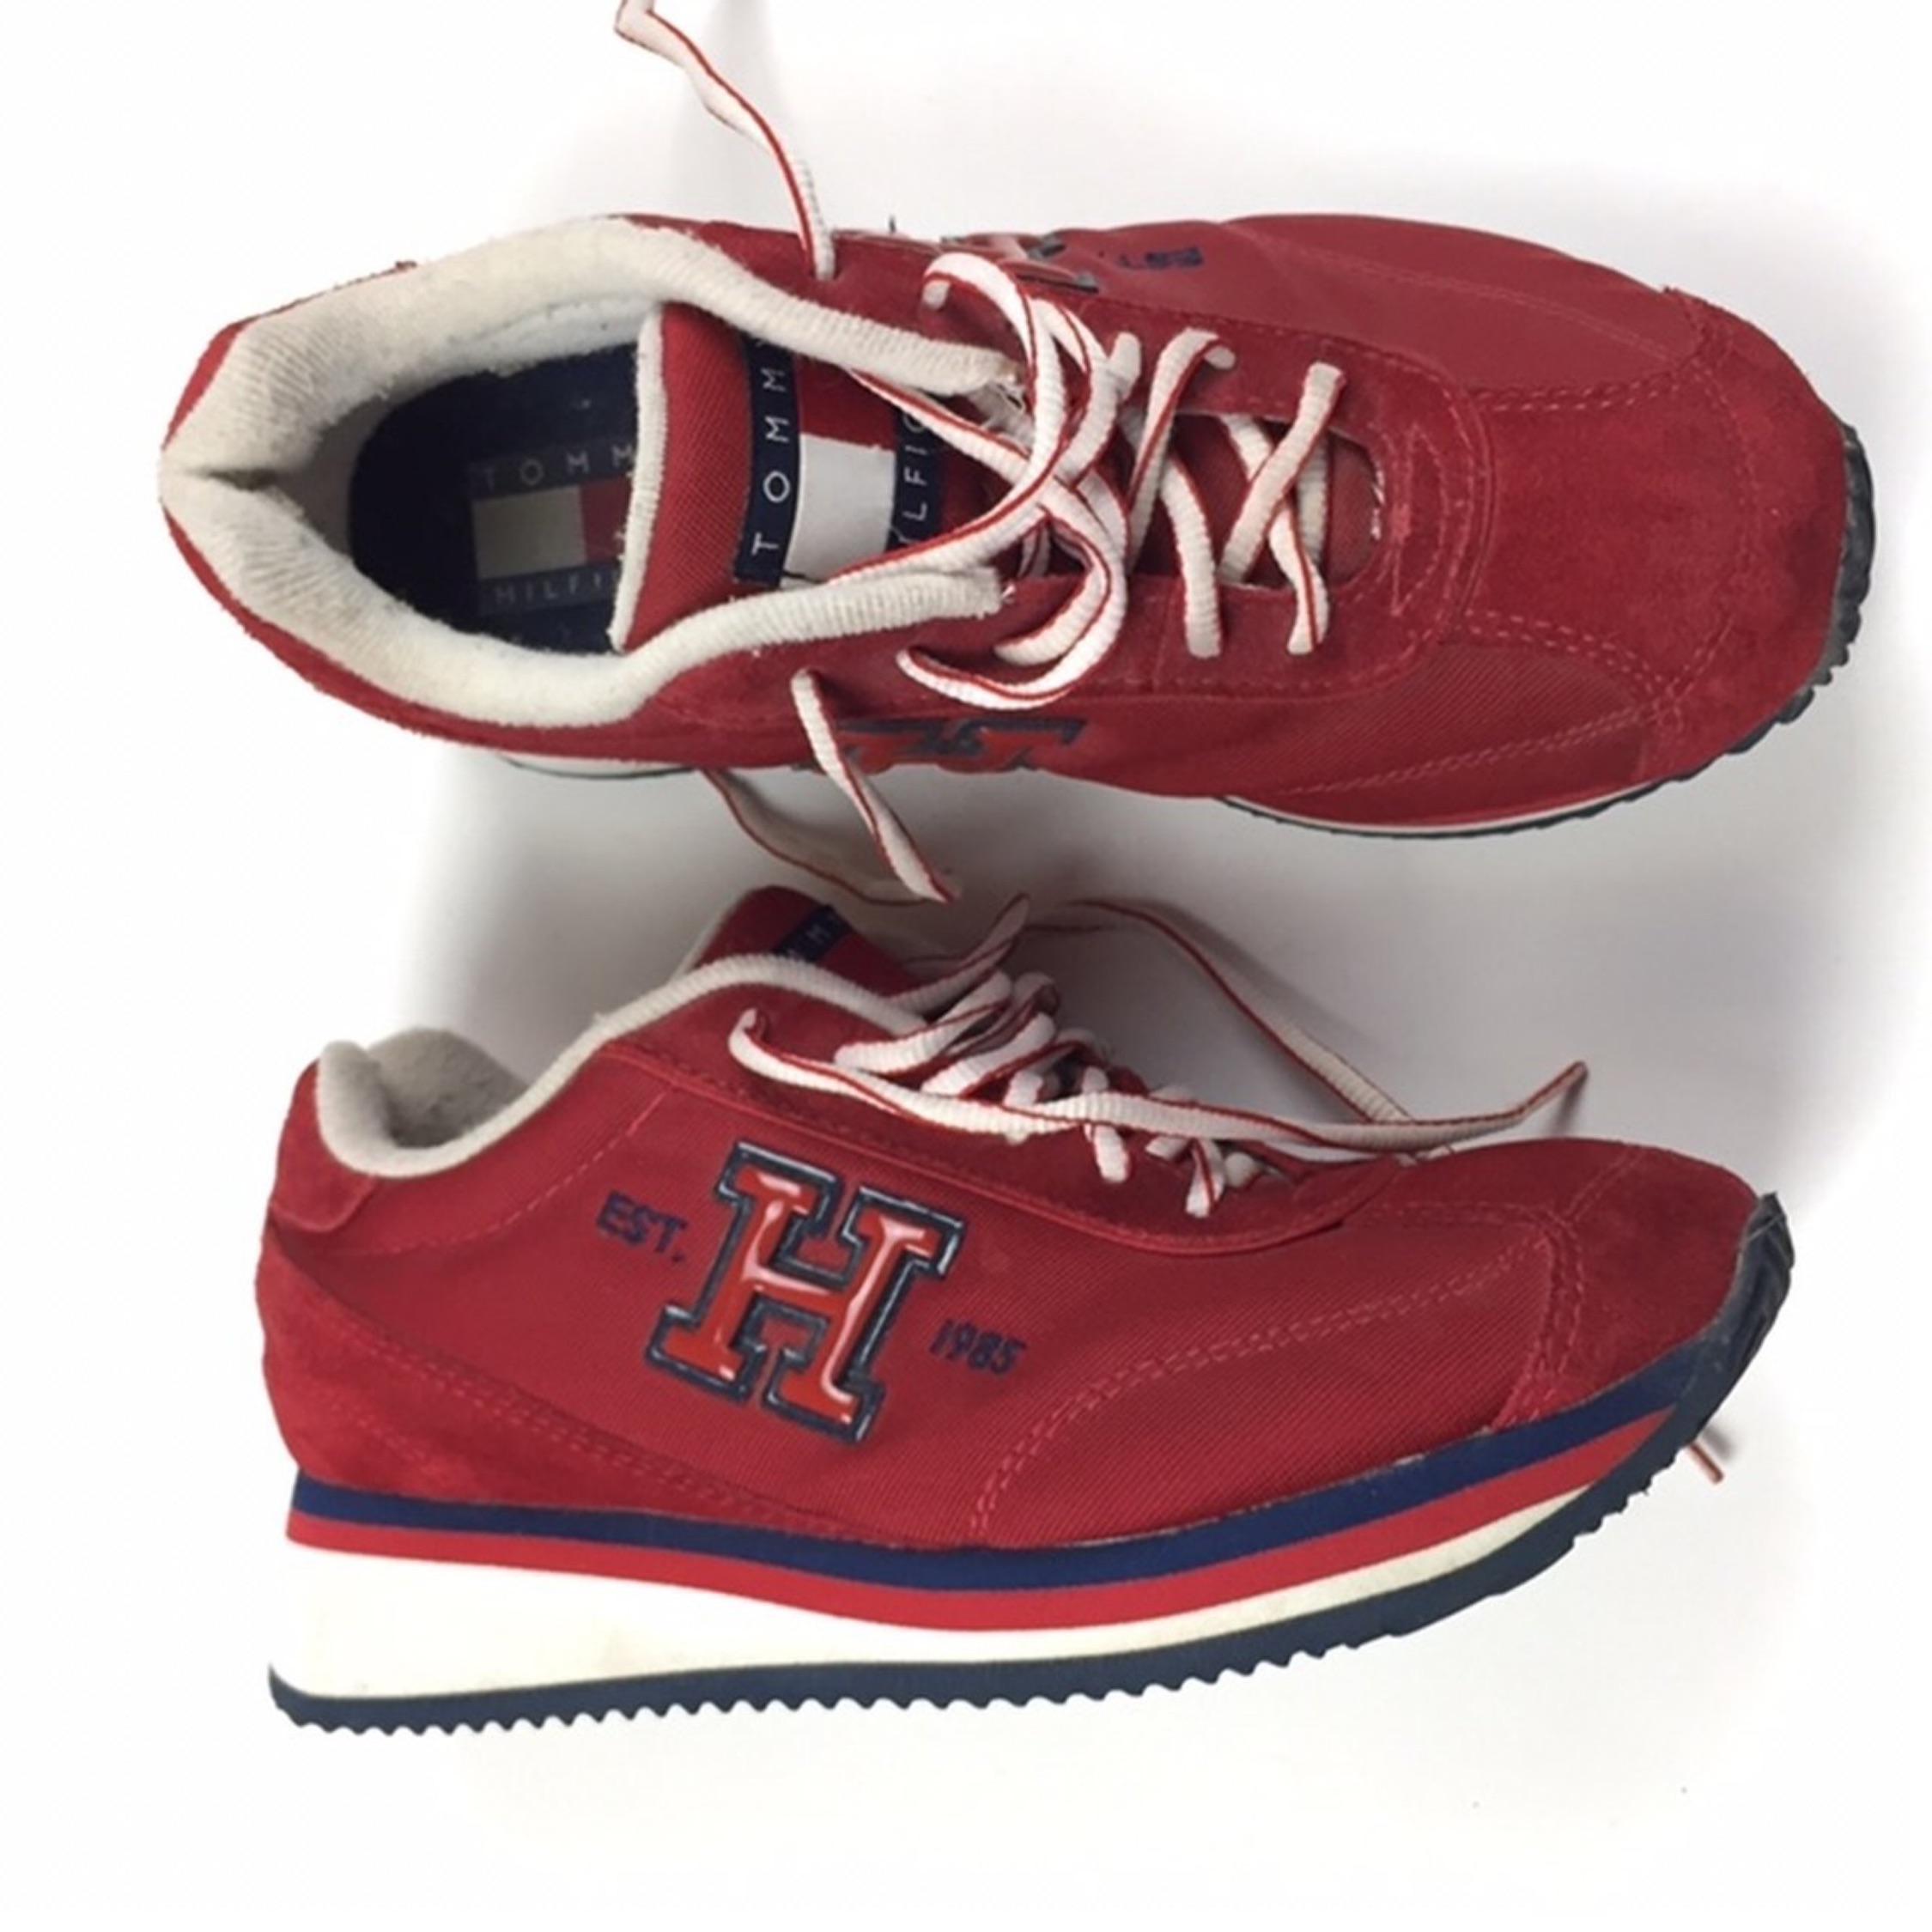 Vintage Tommy Hilfiger Athletic Style Shoes